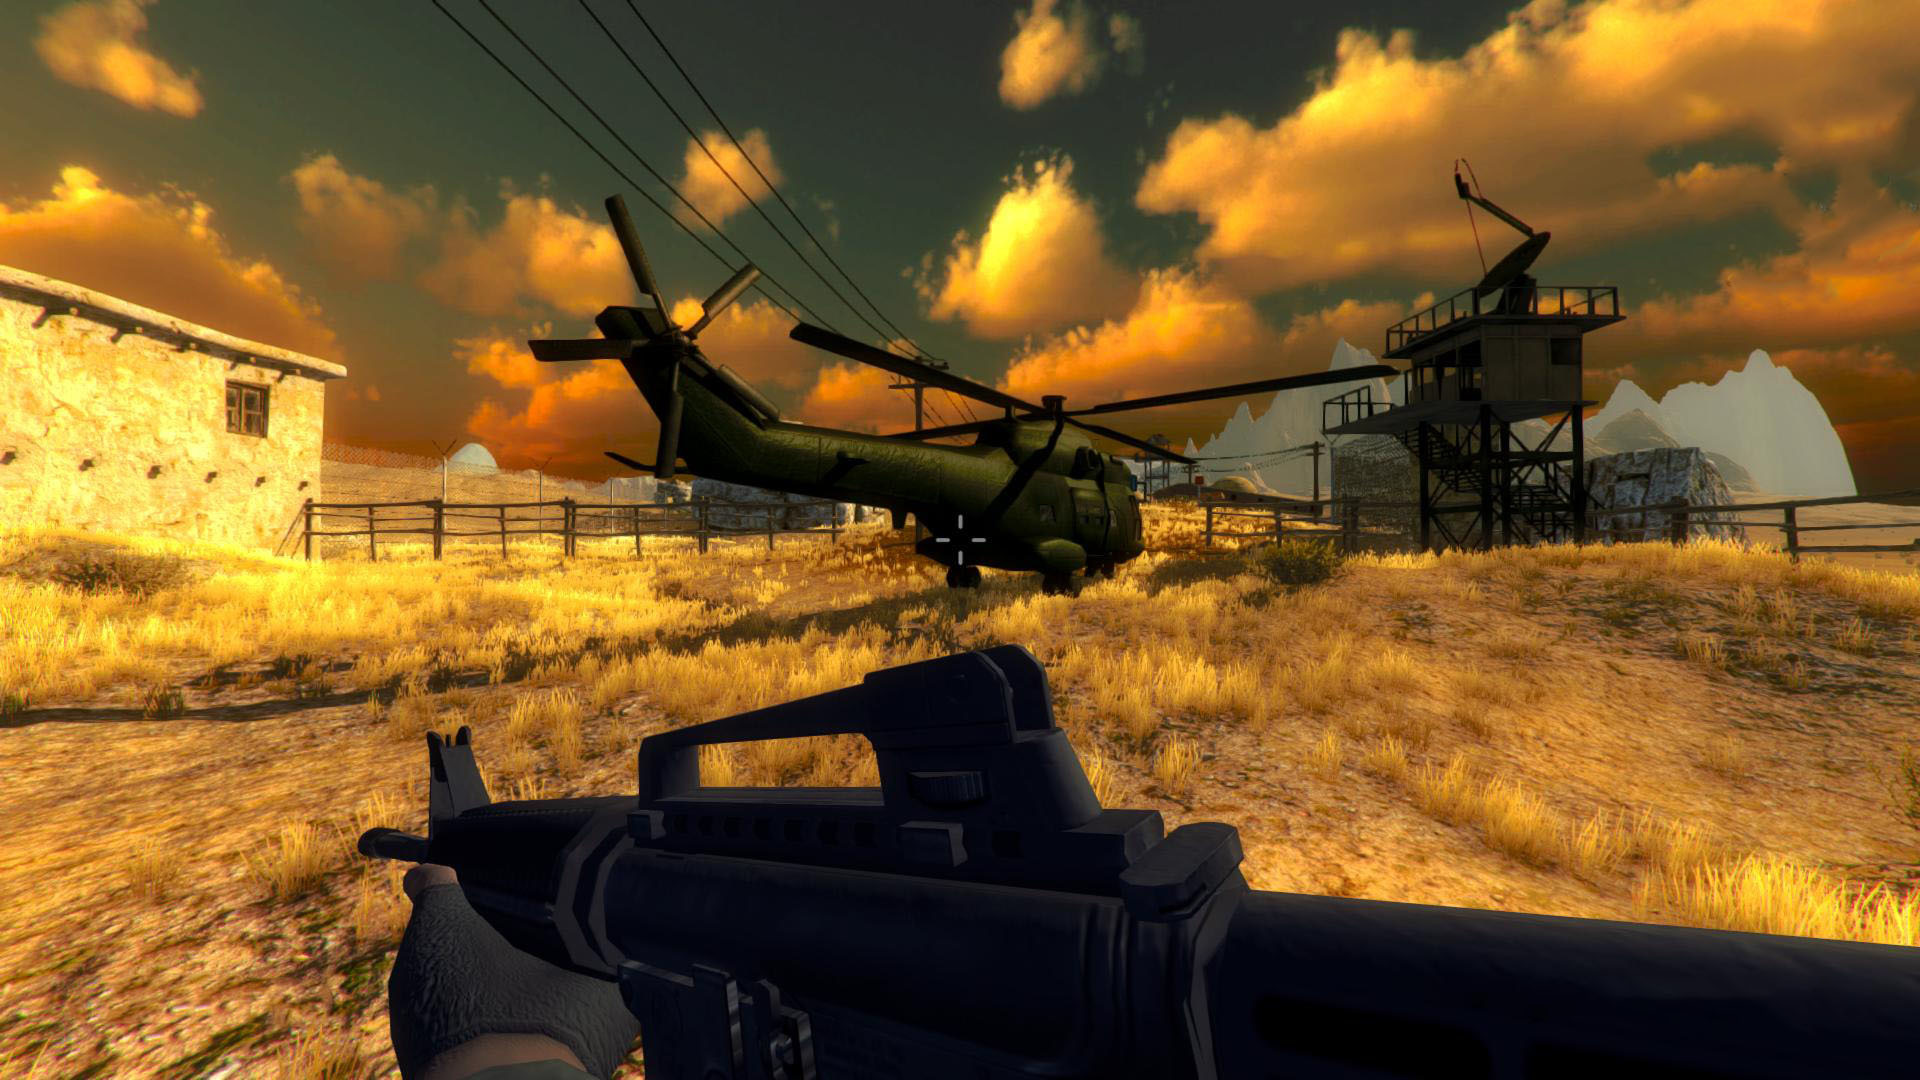 The Last Hope: Trump vs Mafia Remastered Remastered Download For Free